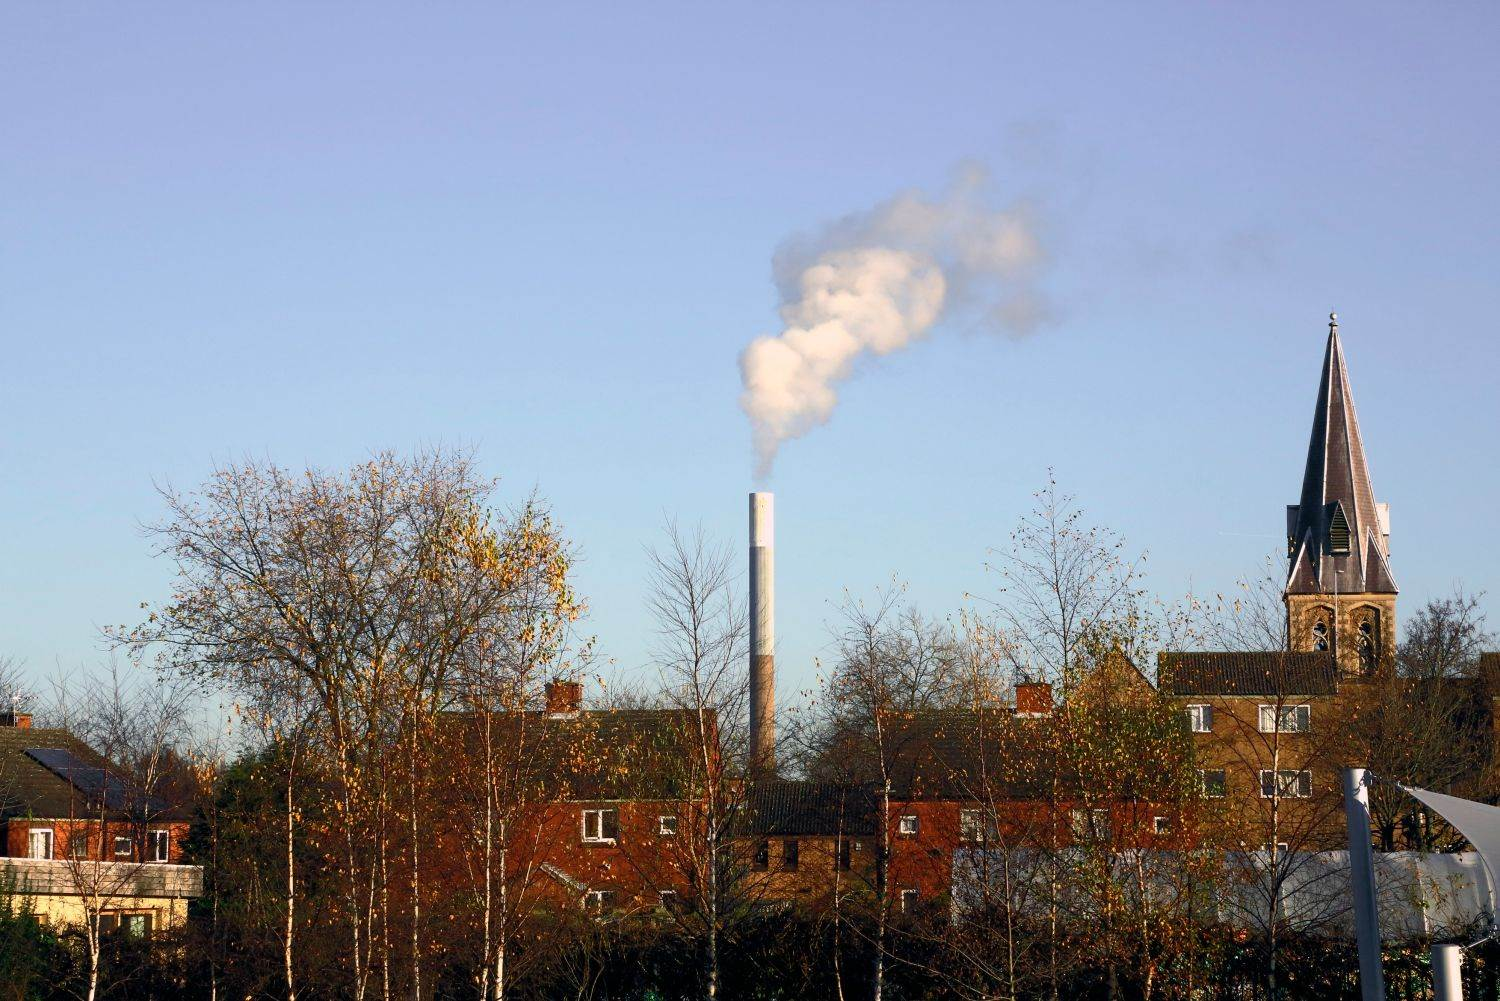 POLLUTION;SMOKE;CHIMNEY;EUROPE;UNITED KINGDOM;UK;ENGLAND;BRITAIN;NOTTINGHAM;POLLUTING;INDUSTRY;ENVIRONMENTAL SCIENCE;AIR POLLUTION;BRITISH;BURNING;CARBON DIOXIDE EMISSIONS;CO2;ENGLISH;EUROPEAN;INCINERATOR;INDUSTRIAL;SMOKESTACK;URBAN;CITY;category_code_environment